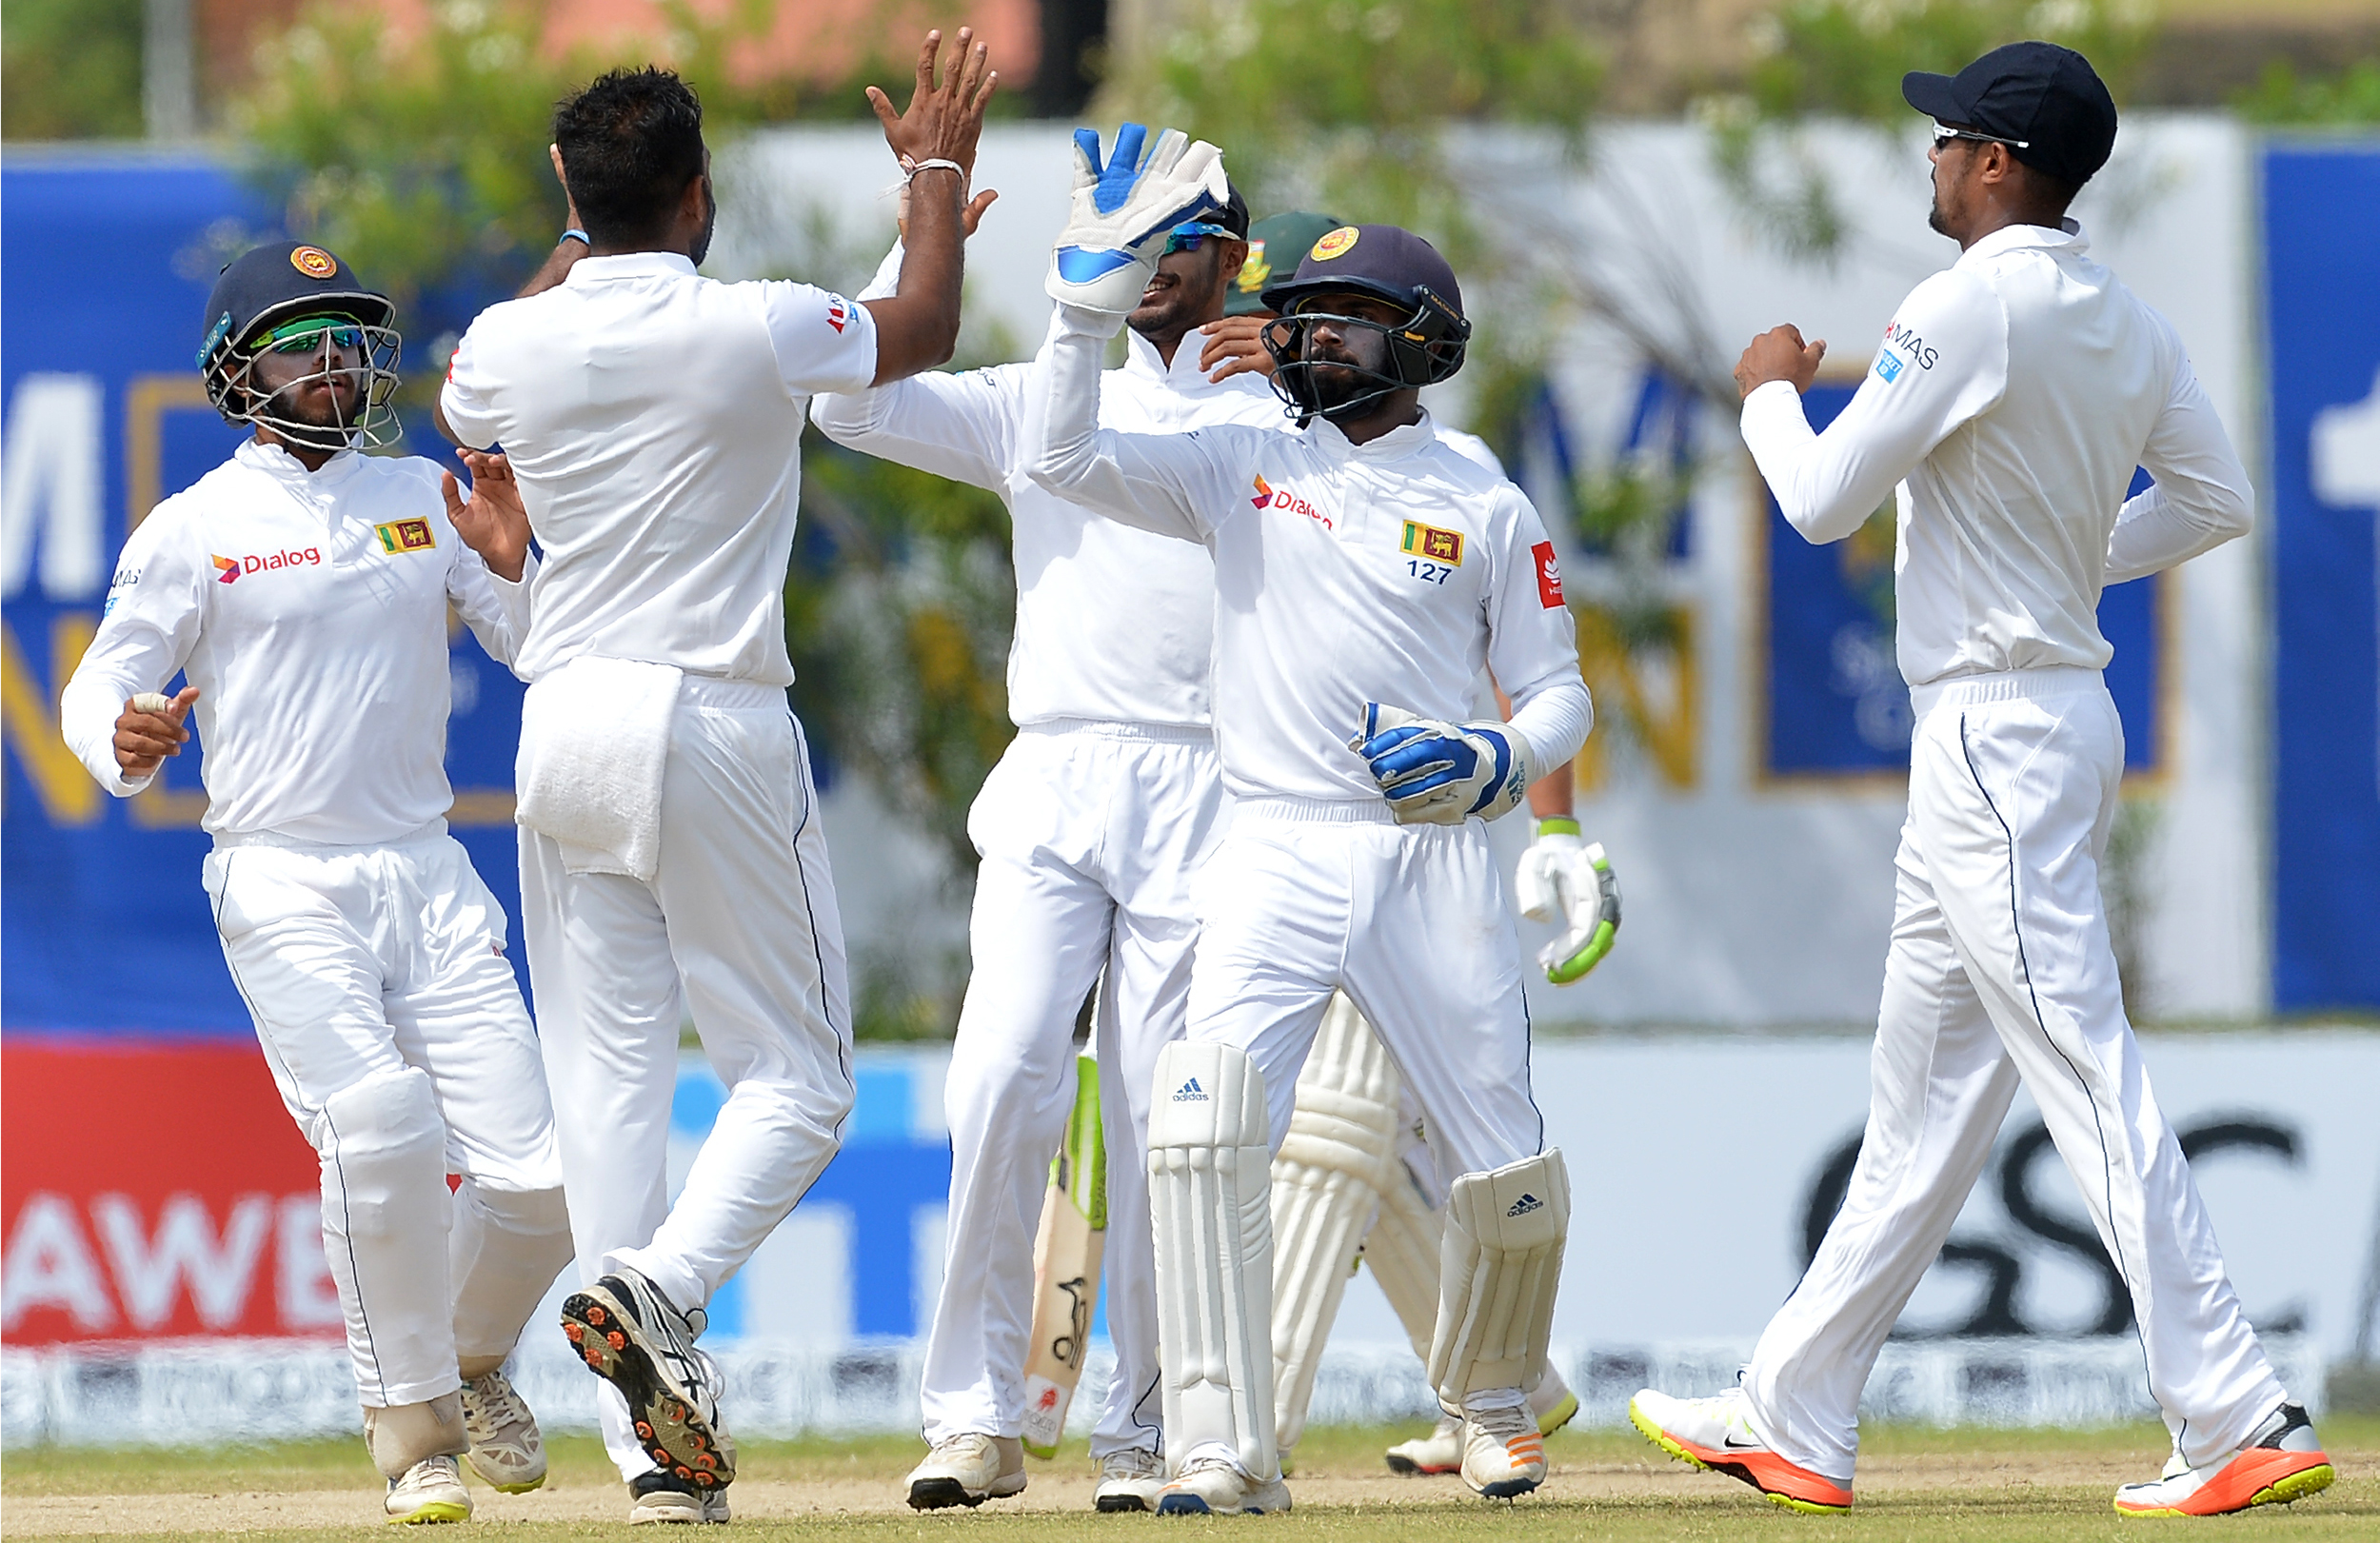 Sri Lanka players celebrate a wicket / Getty Images    